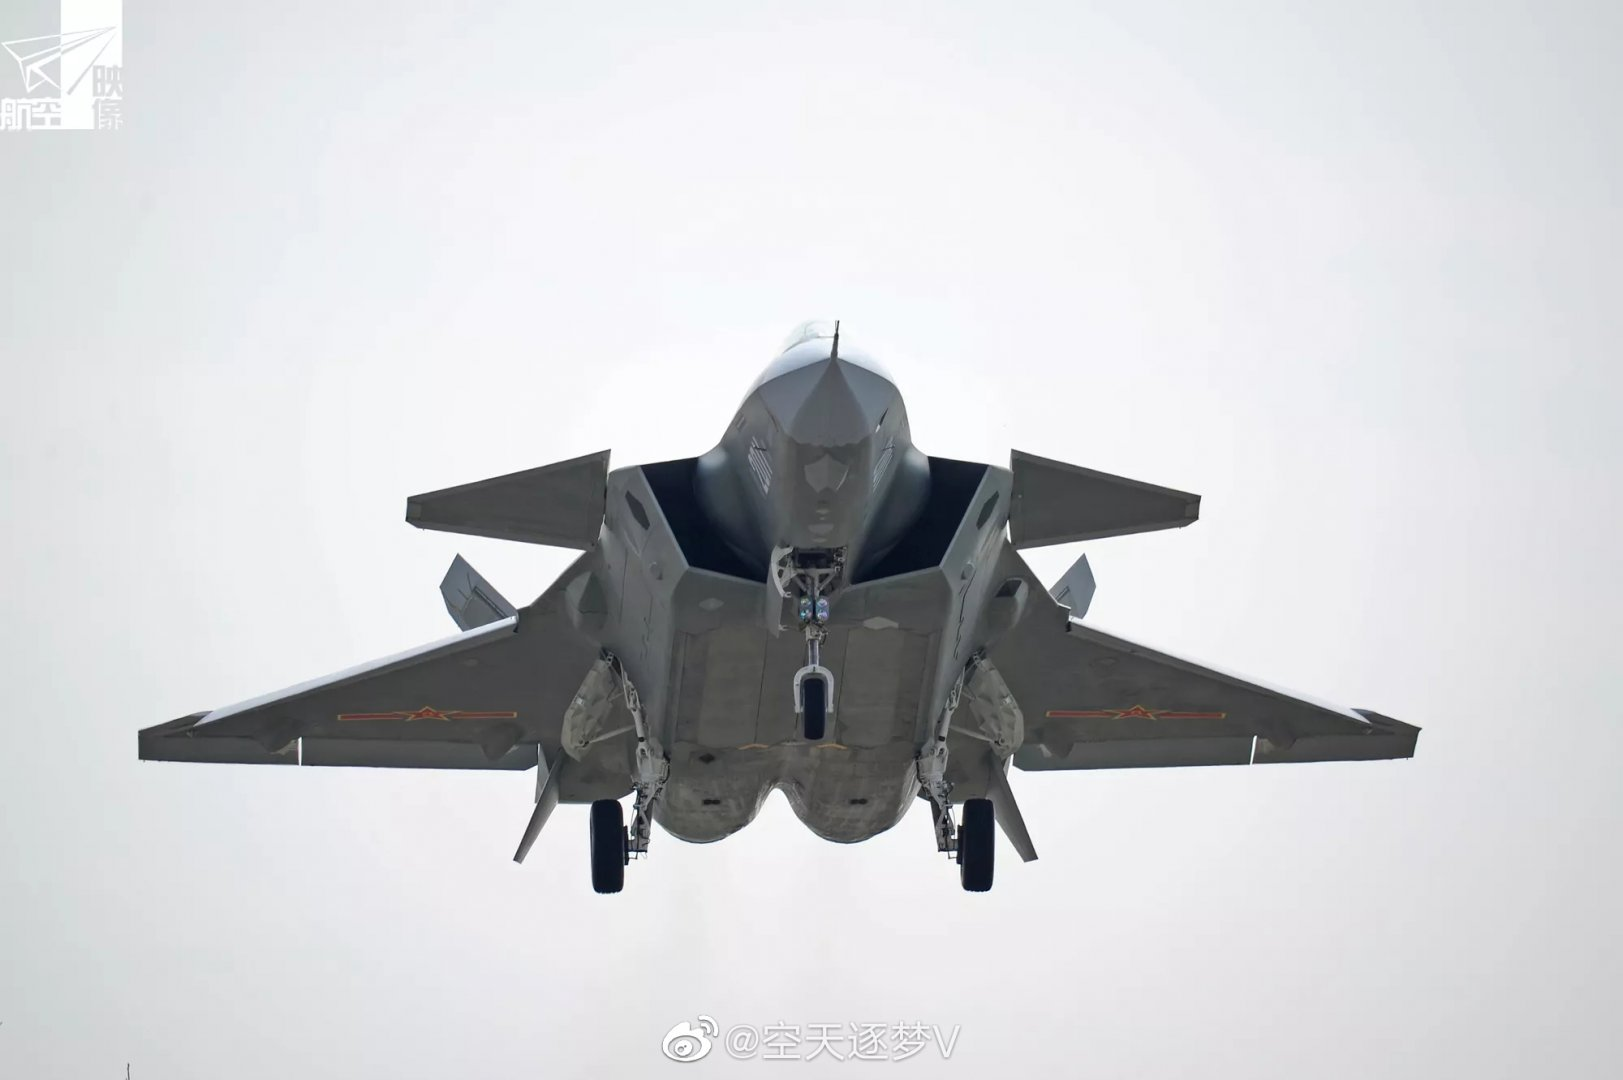 Chengdu J-20 Stealth Fighter - Page 8 0080my10